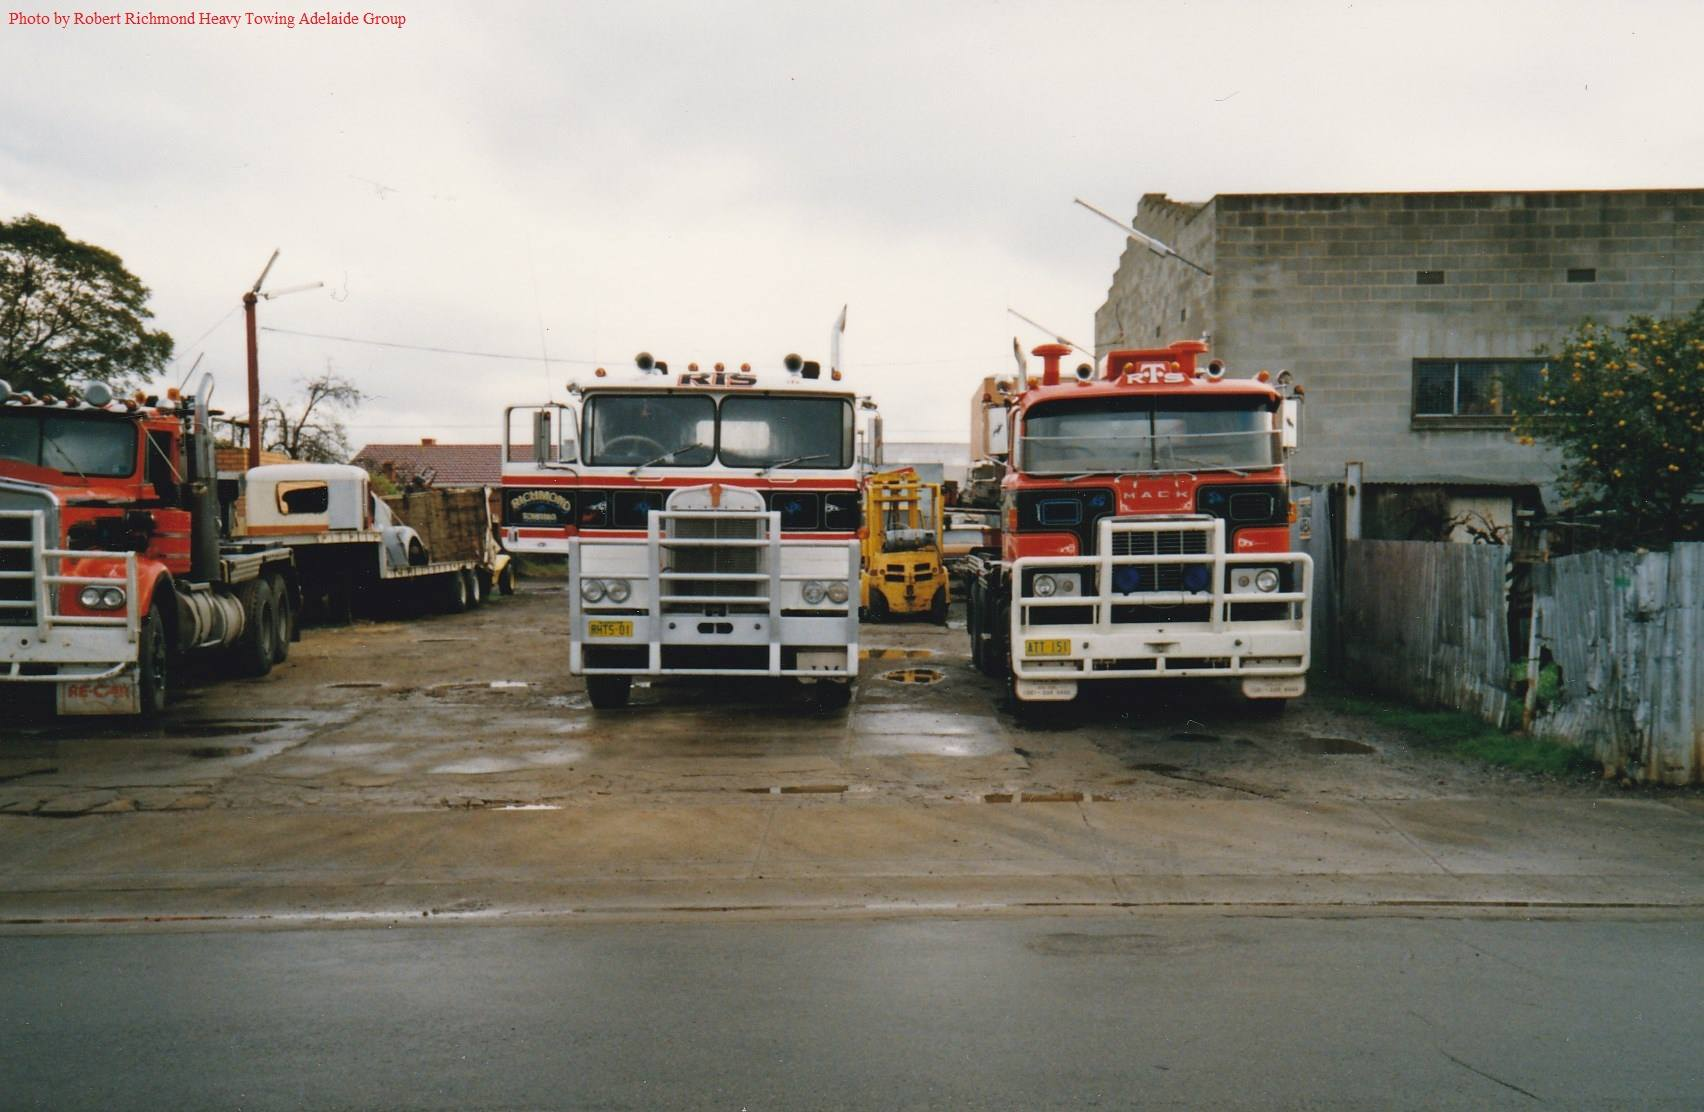 Mack-KW-Richmond-Heavy-Towing-Adelaide